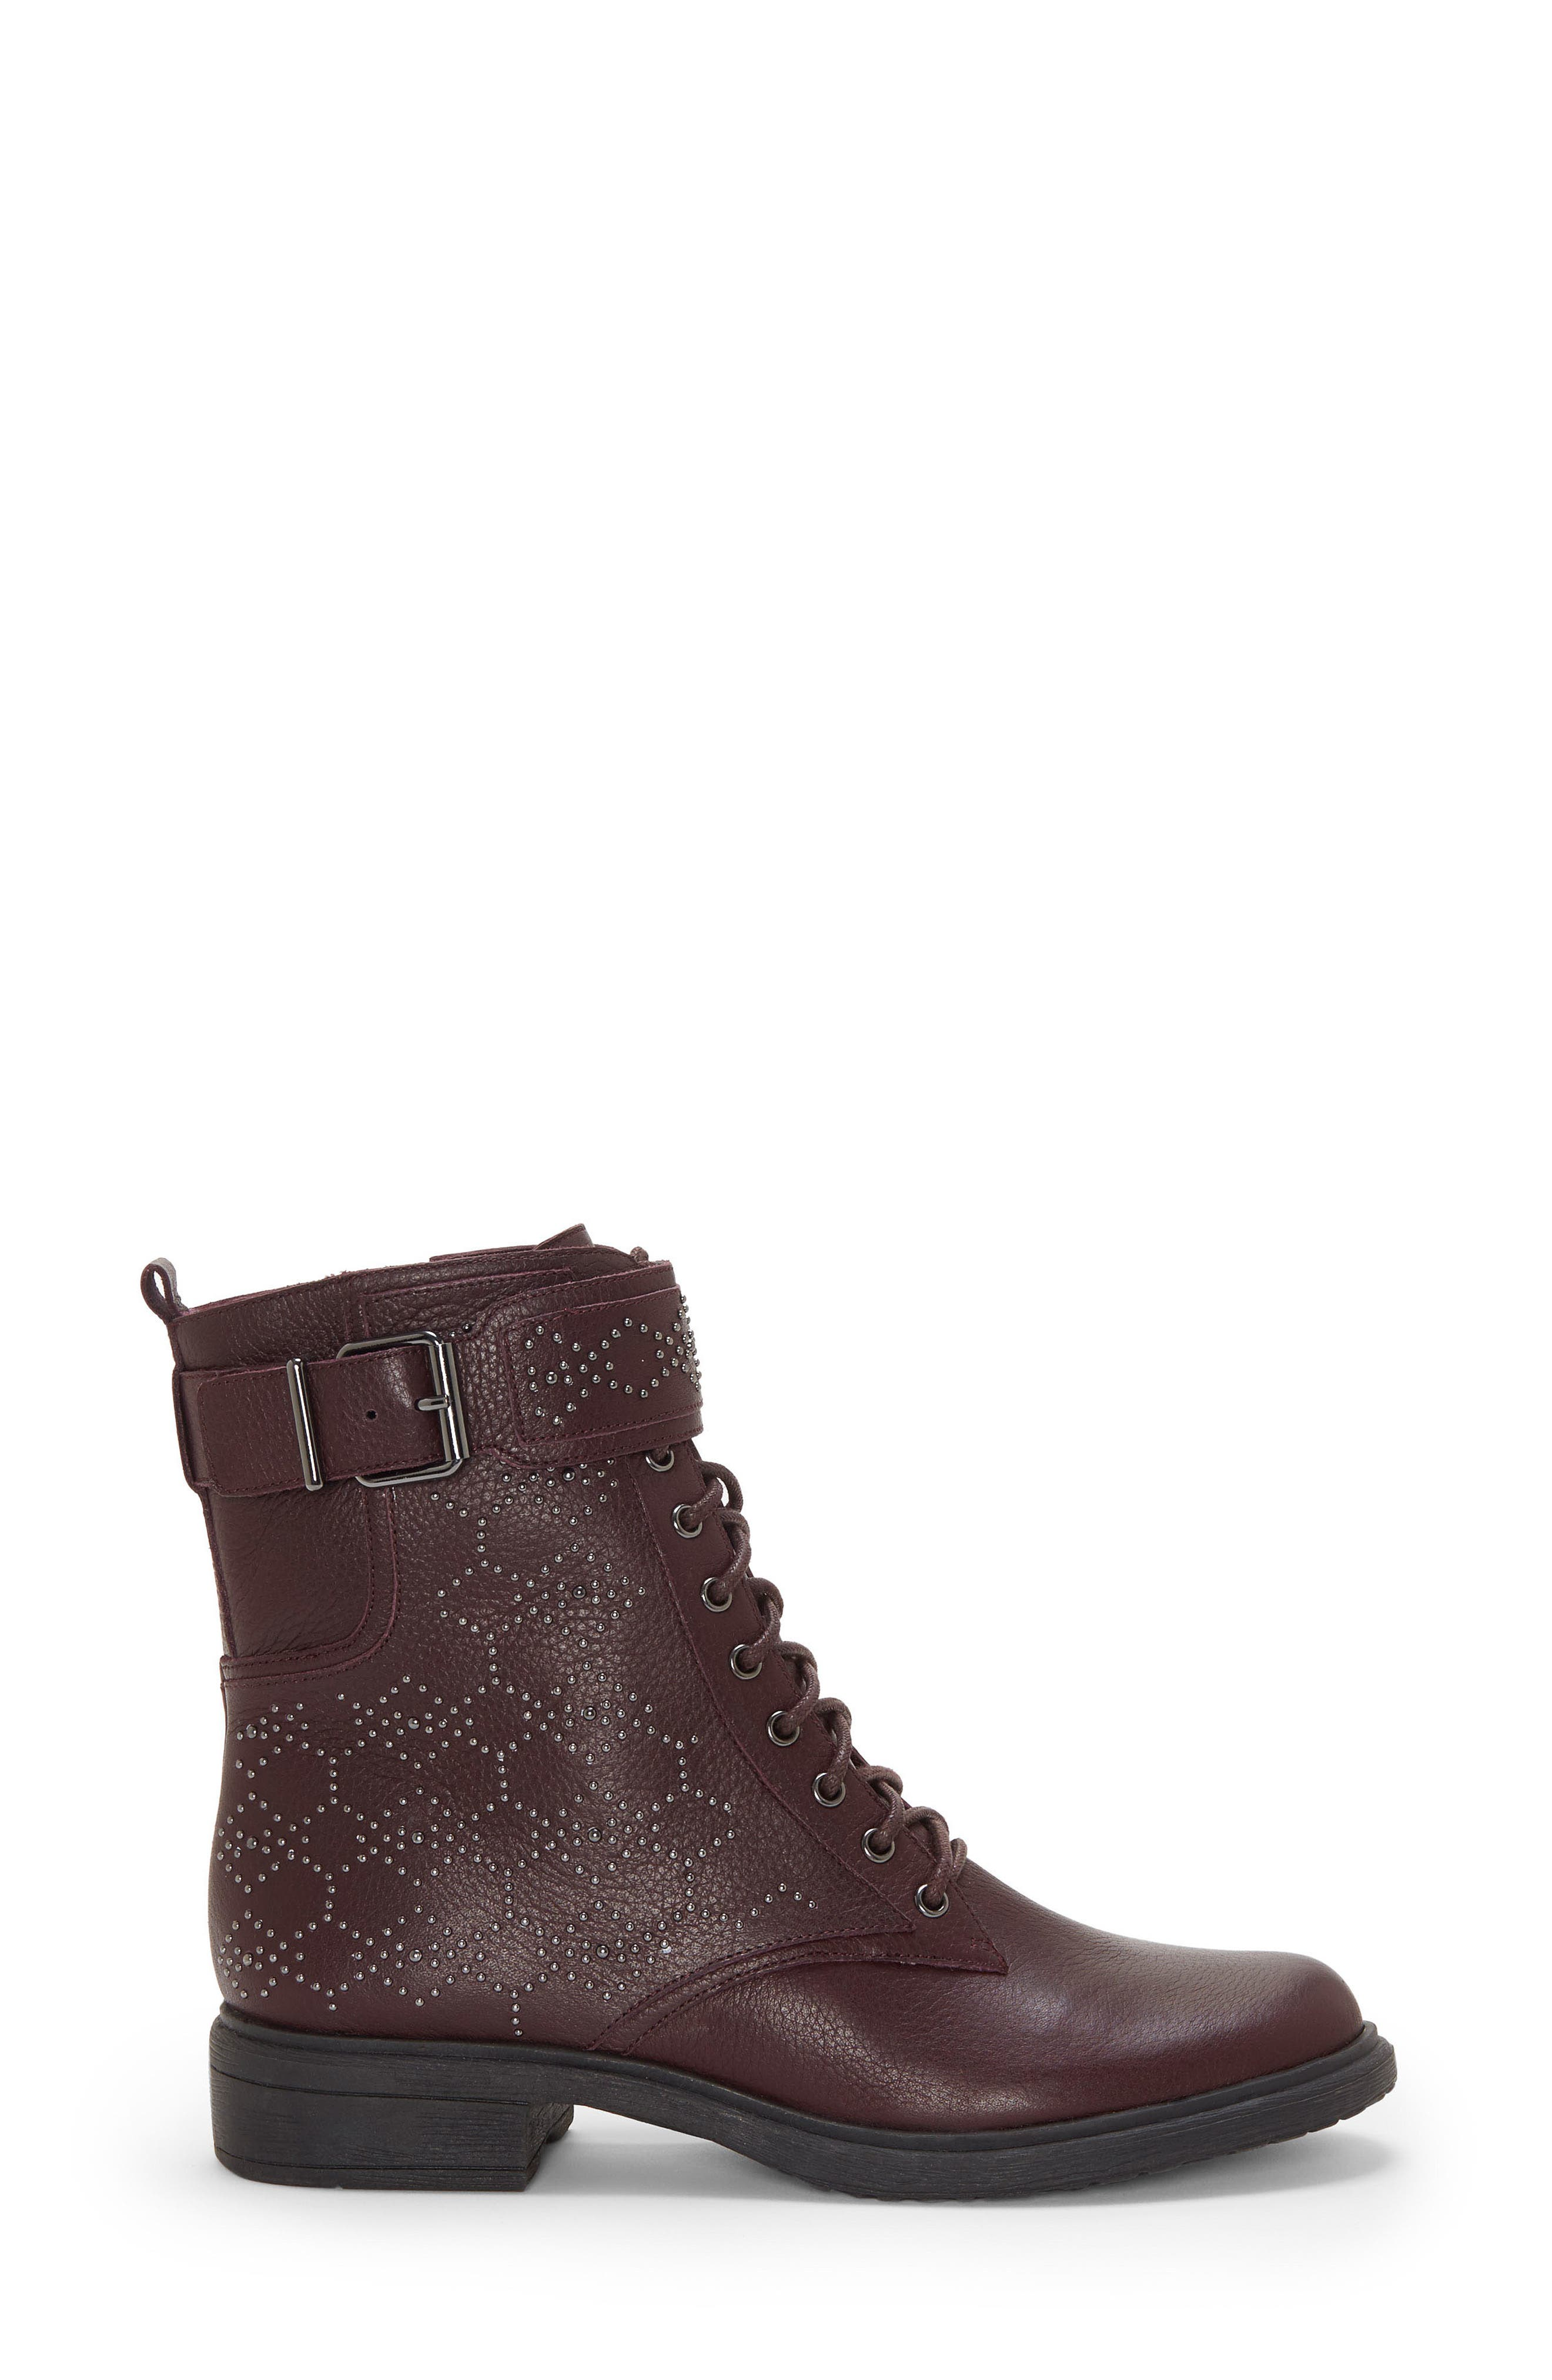 VINCE CAMUTO,                             Tanowie Boot,                             Alternate thumbnail 3, color,                             VAMP LEATHER